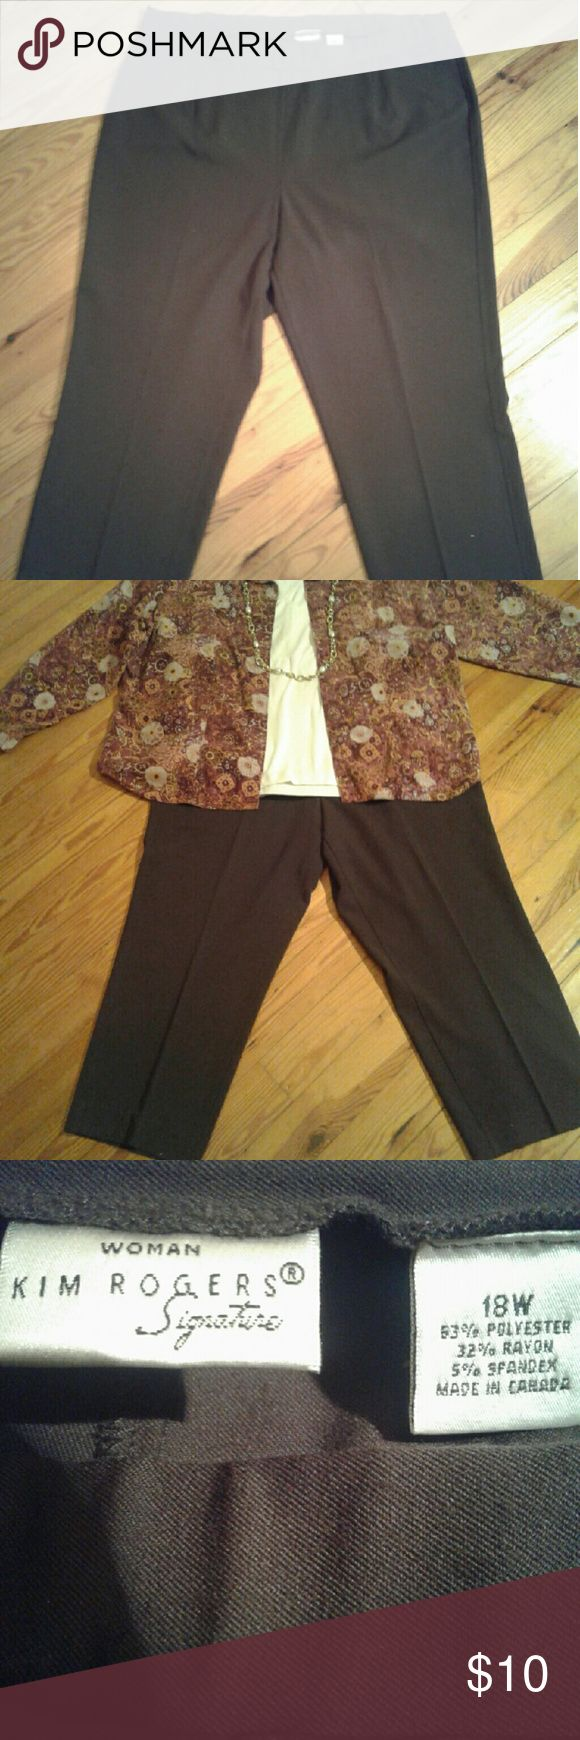 NWOT  PLUS SIZE Kim Roger's  Brown Slacks NWOT PLUS SIZE Kim Roger's  brown slacks with elastic waistband. Size 18. Excellent condition. SOLD AS IS. Kim Roger's  Pants